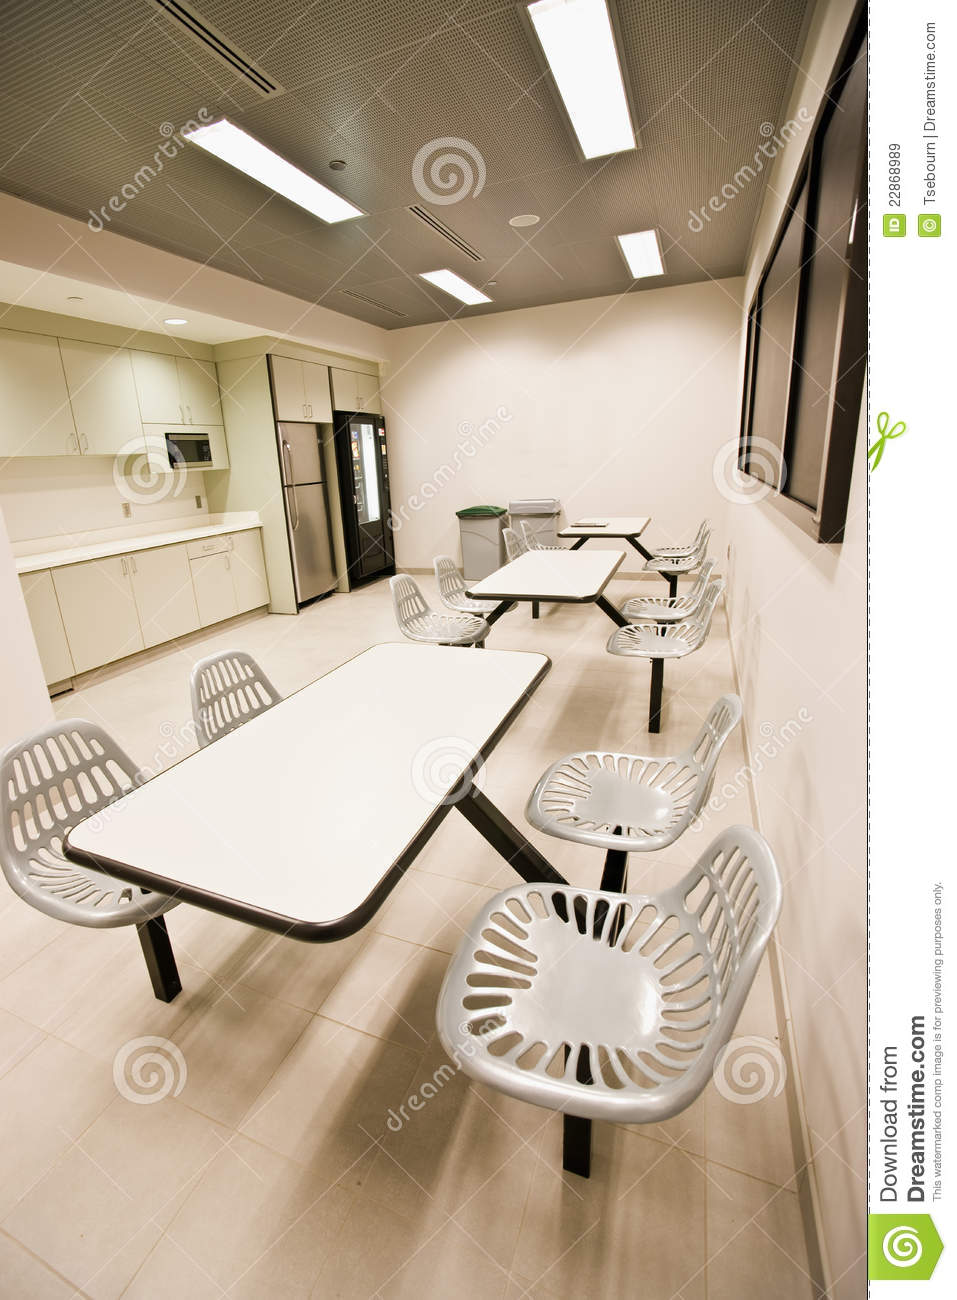 Download Office Break Room Stock Image. Image Of Office, Employee   22868989